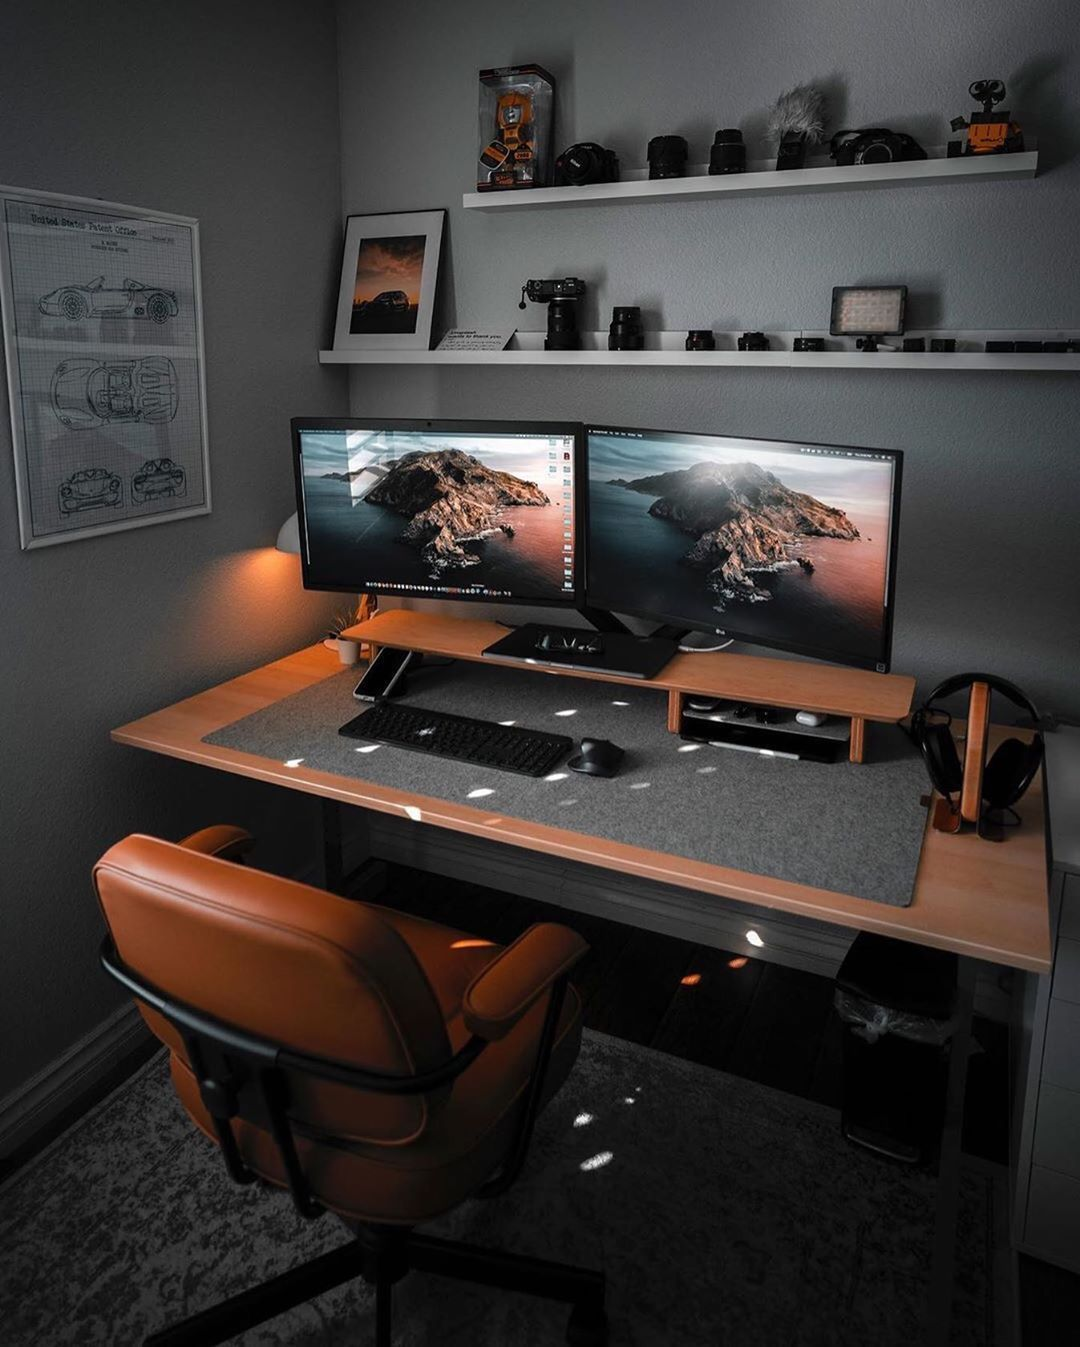 Home Officeinterior Design Ideas: Rate This Setup 1-10 Awesome Setup By: @michsoledesign Do